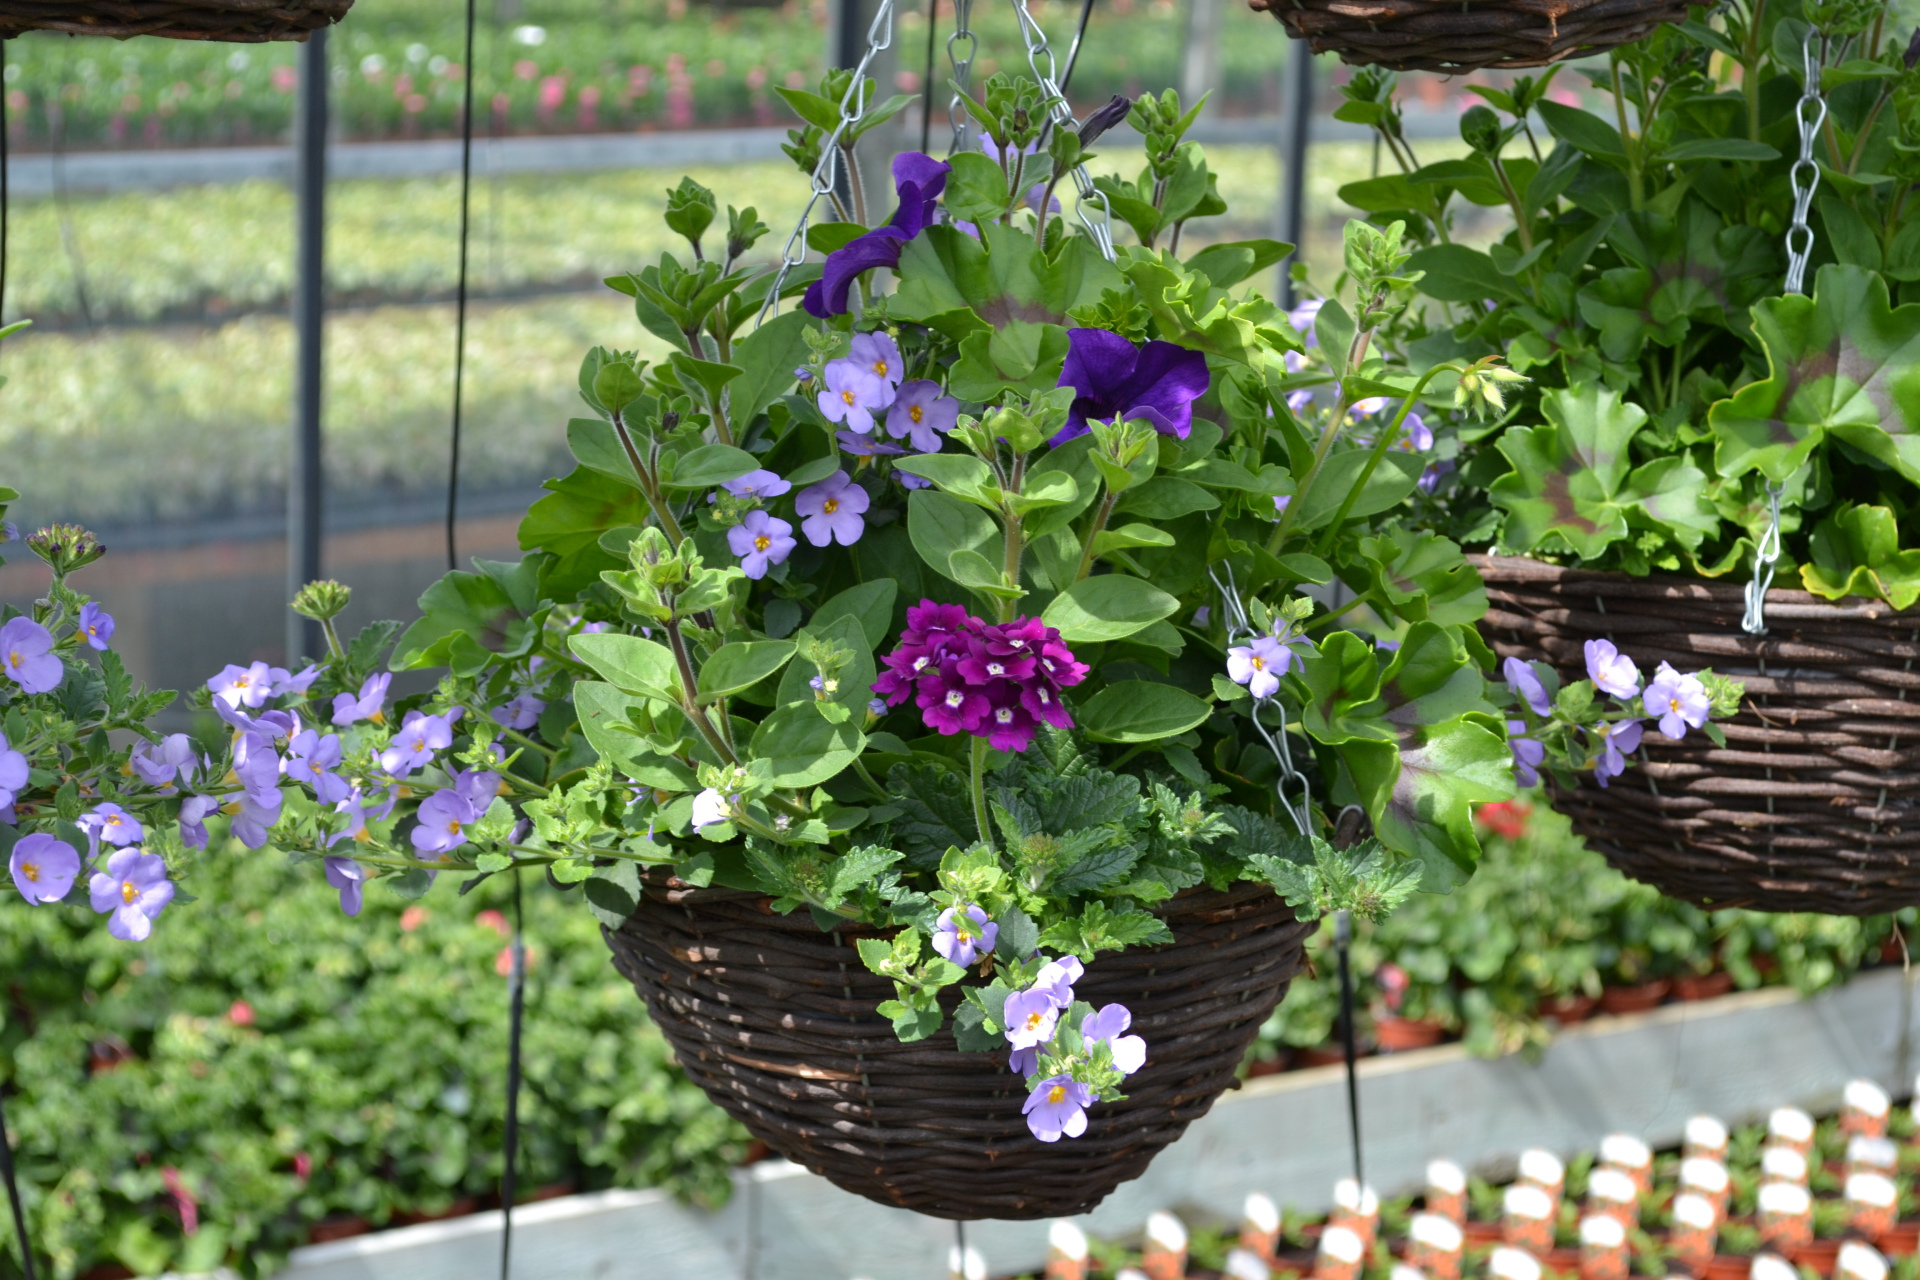 Garden Centre, Ben Vista, Plants, Hanging Basket